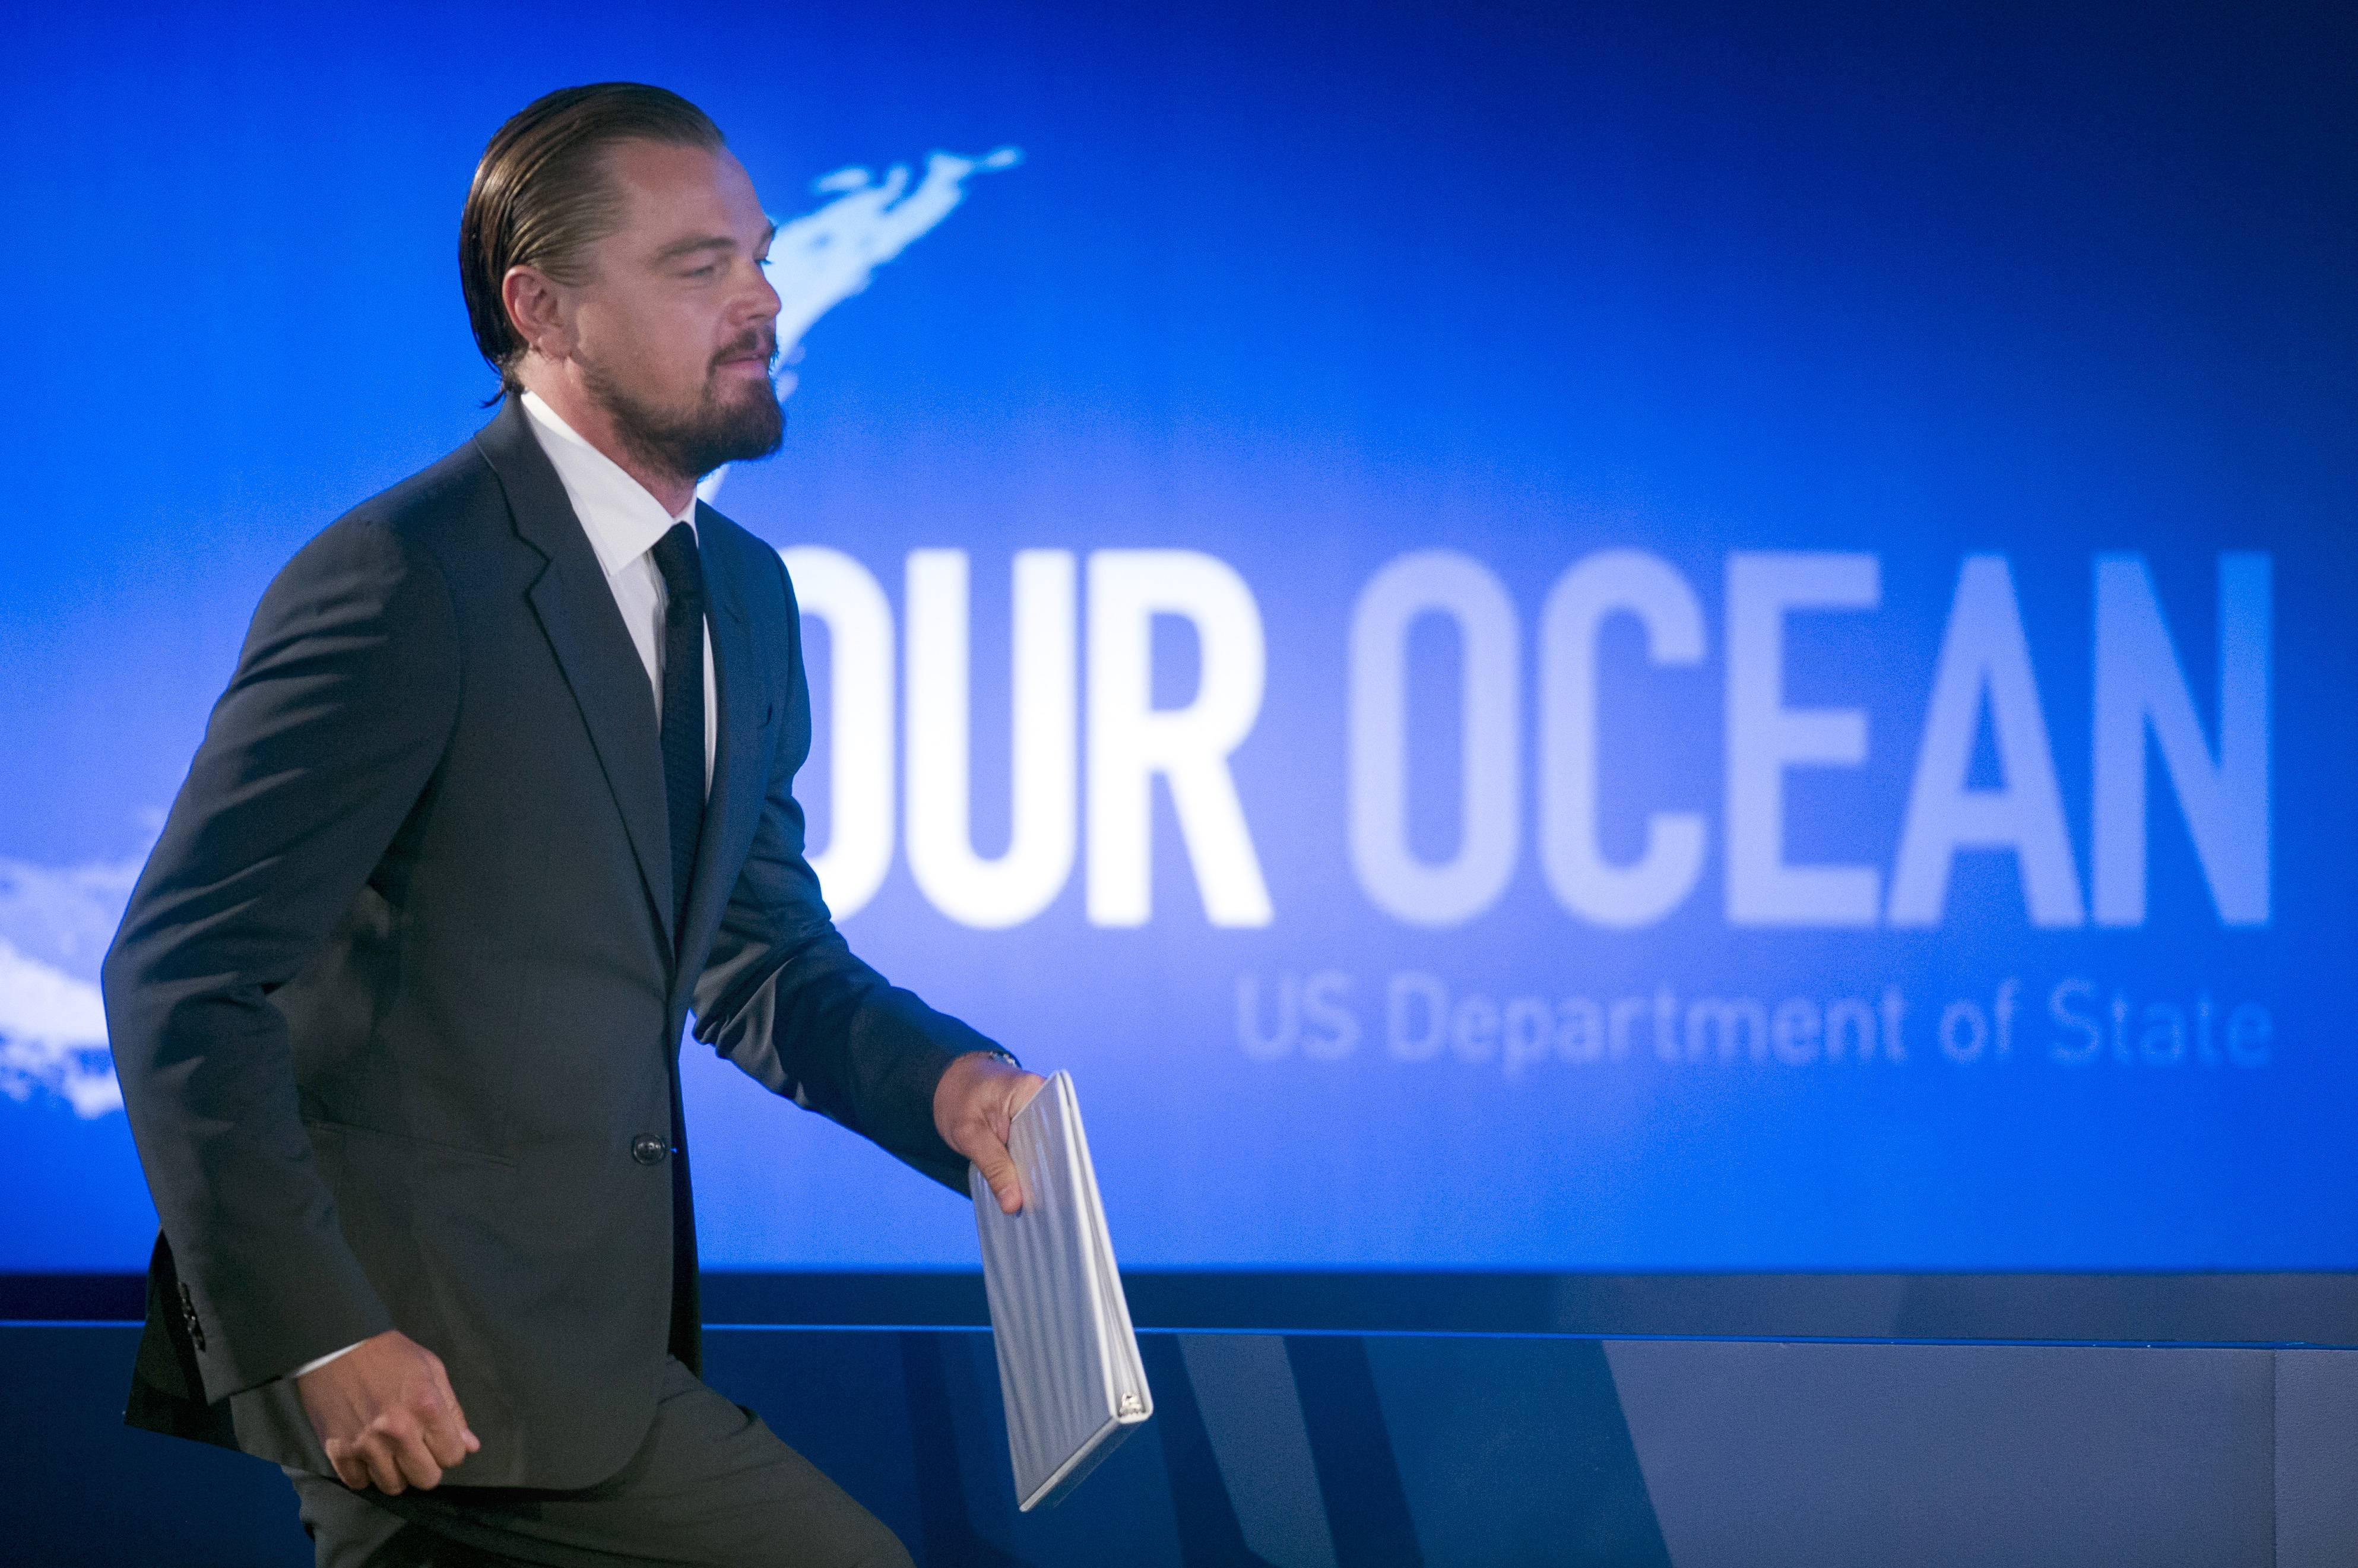 Actor Leonardo DiCaprio walks onstage to speak Tuesday at the State Department's 'Our Ocean' conference at the State Department in Washington.